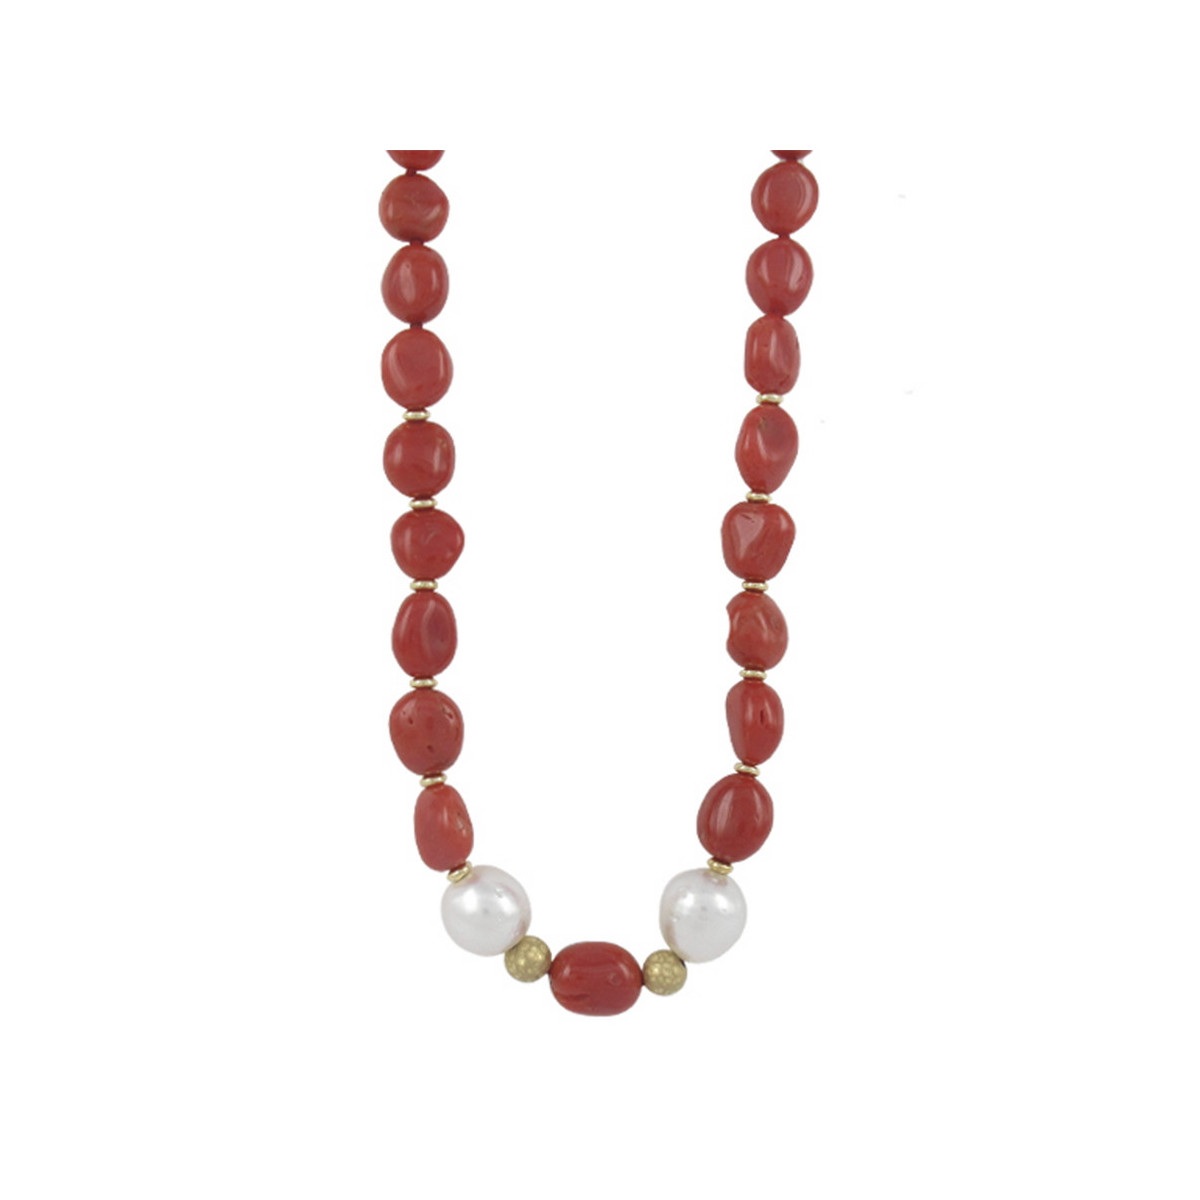 CORAL GOLD AND PEARLS NECKLACE